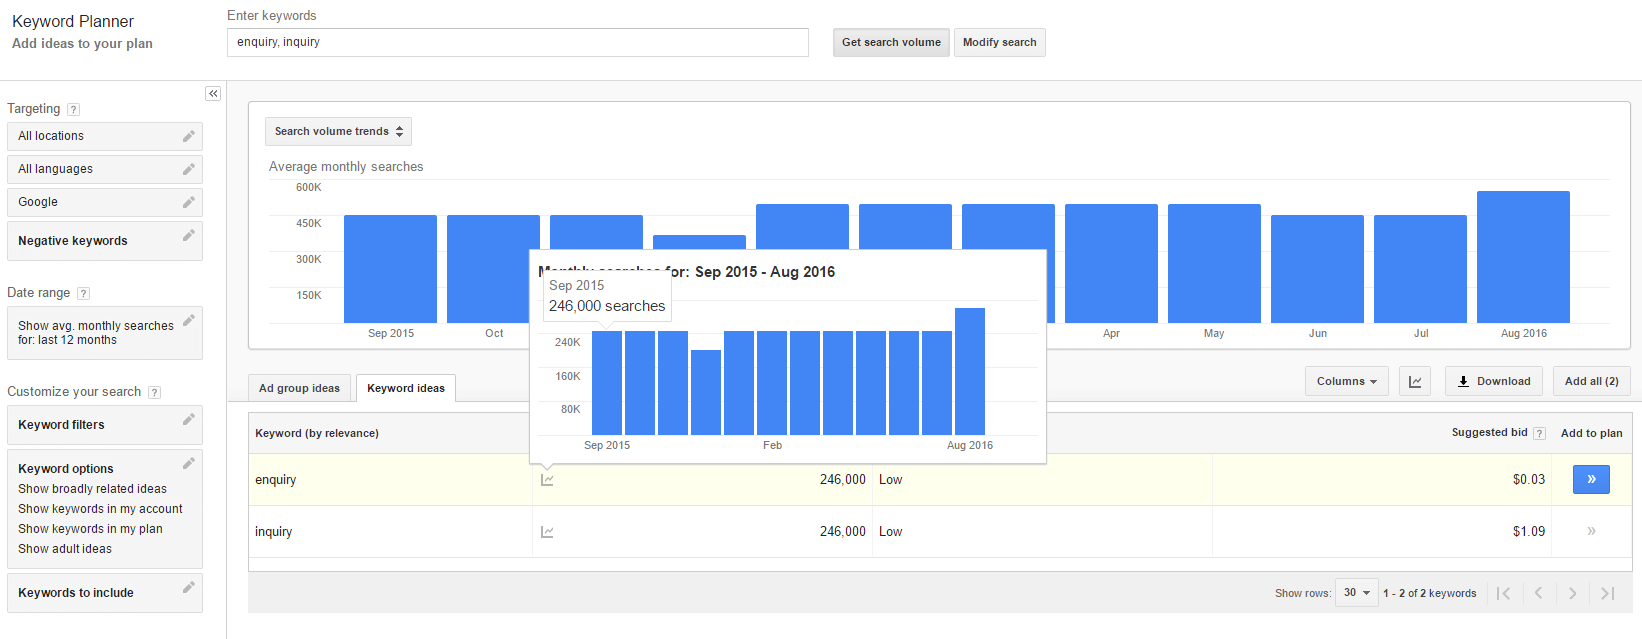 enquiry average volumes screenshot